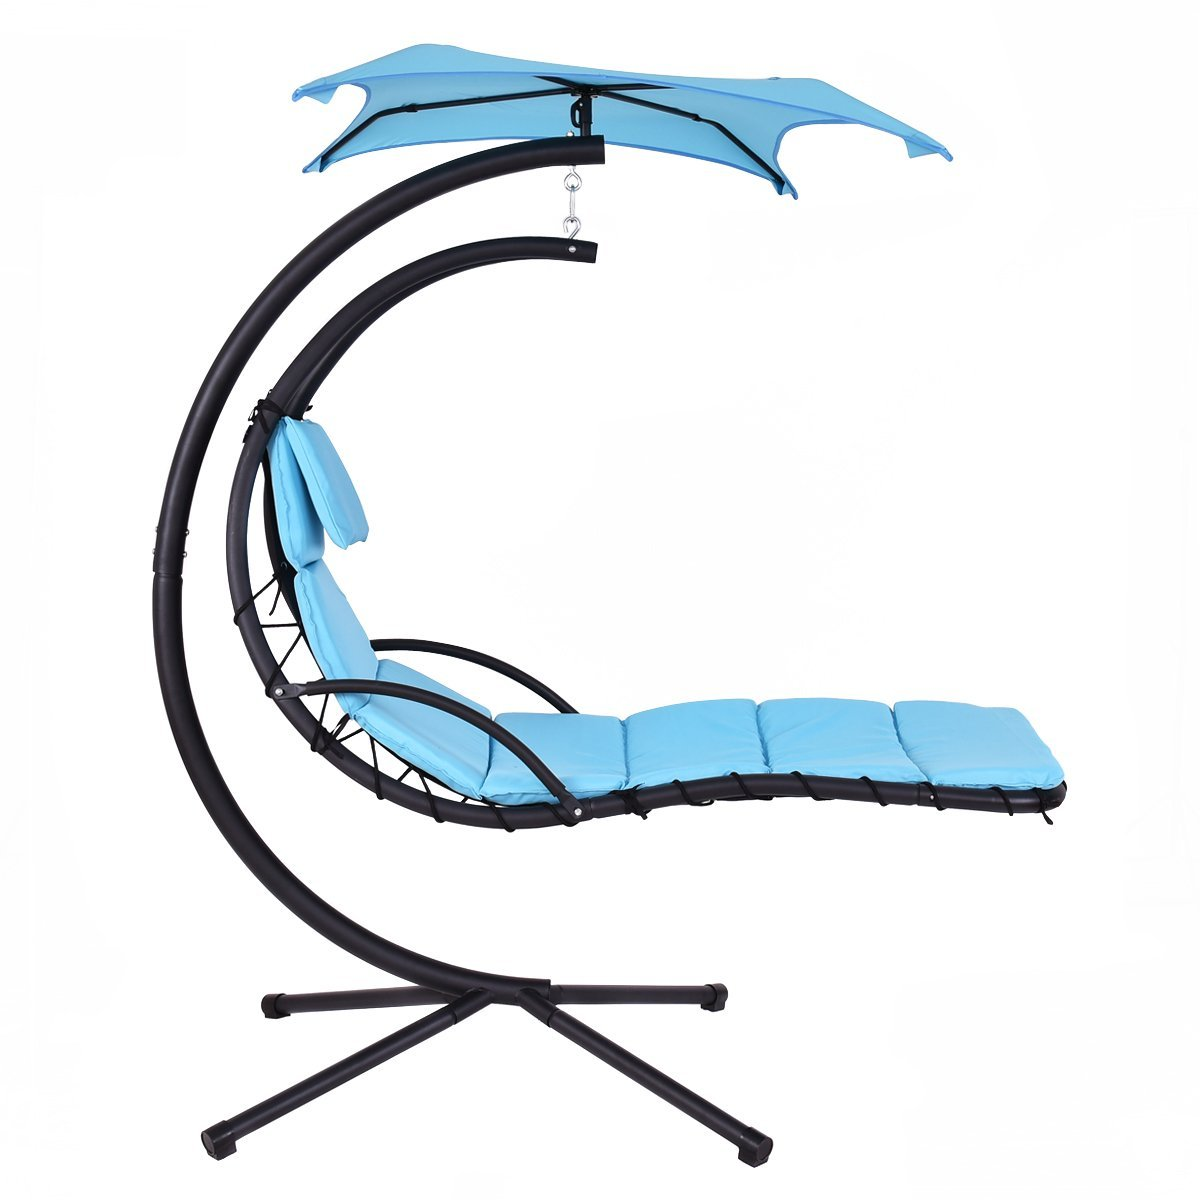 Giantex Hanging Lounge Helicopter Hammock Chair Blue